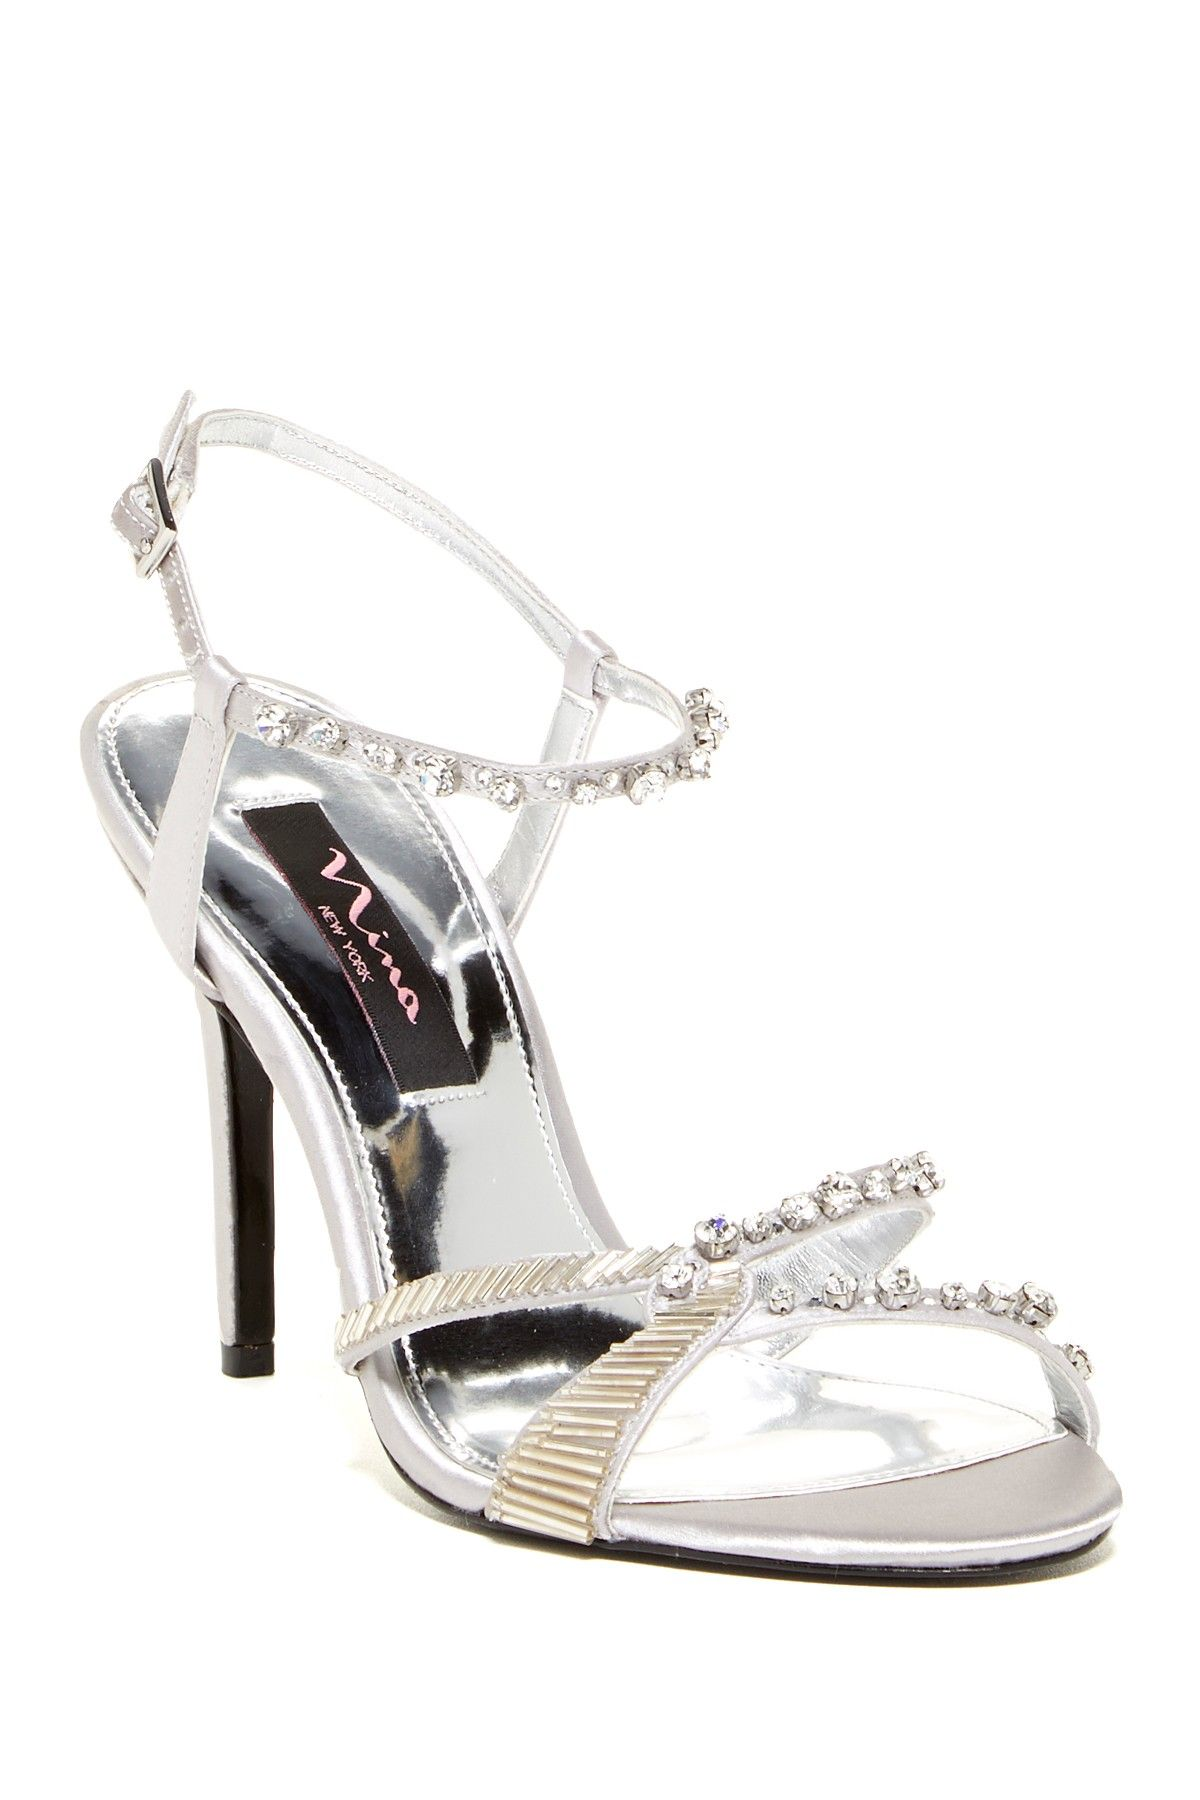 Beaded Jeweled Chimere Silver Dress Sandal By Nina Shoes